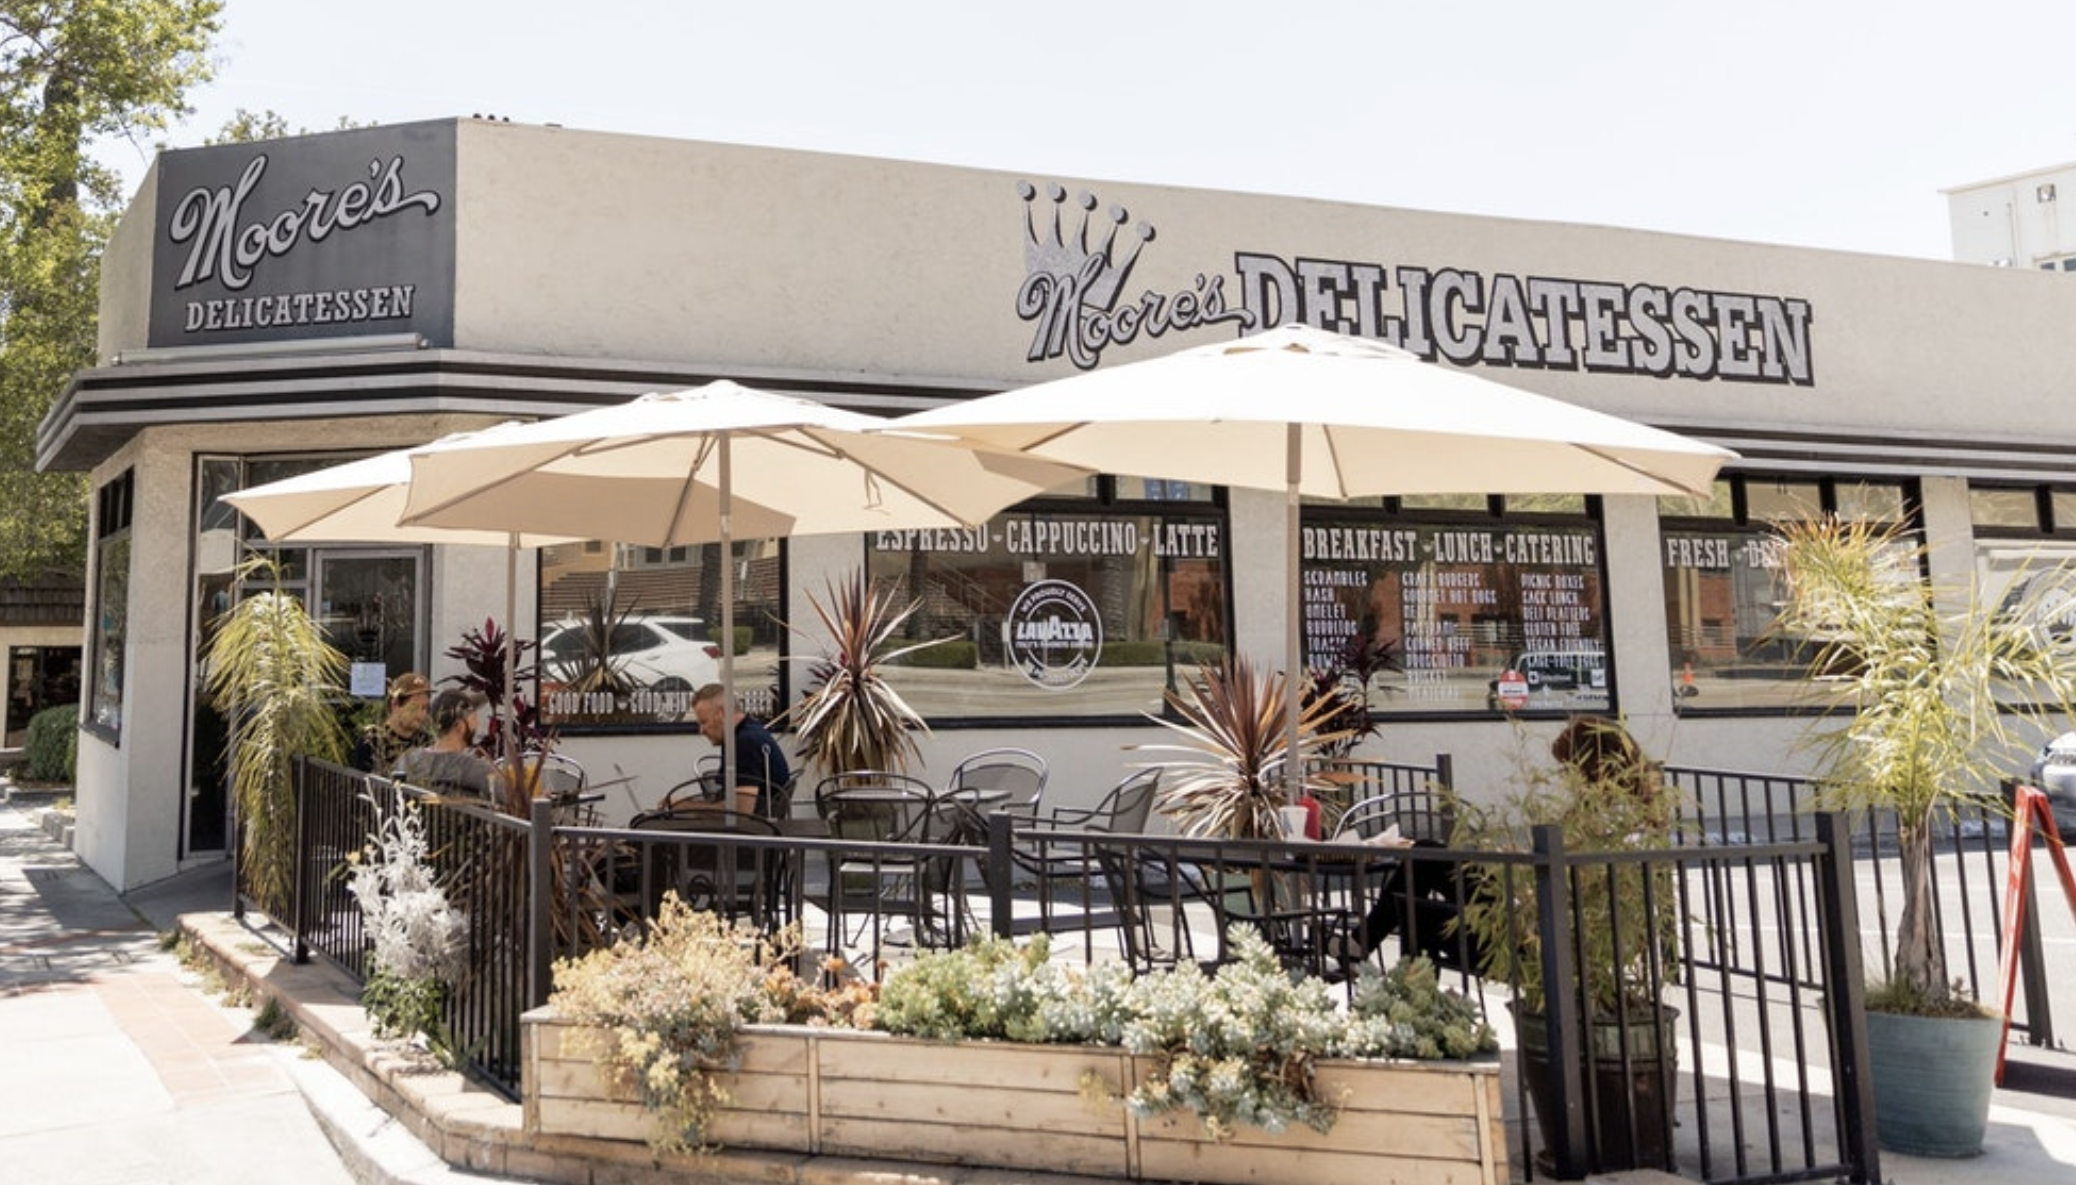 The exterior of a grey and tan deli restaurant with patio seating in the sun.